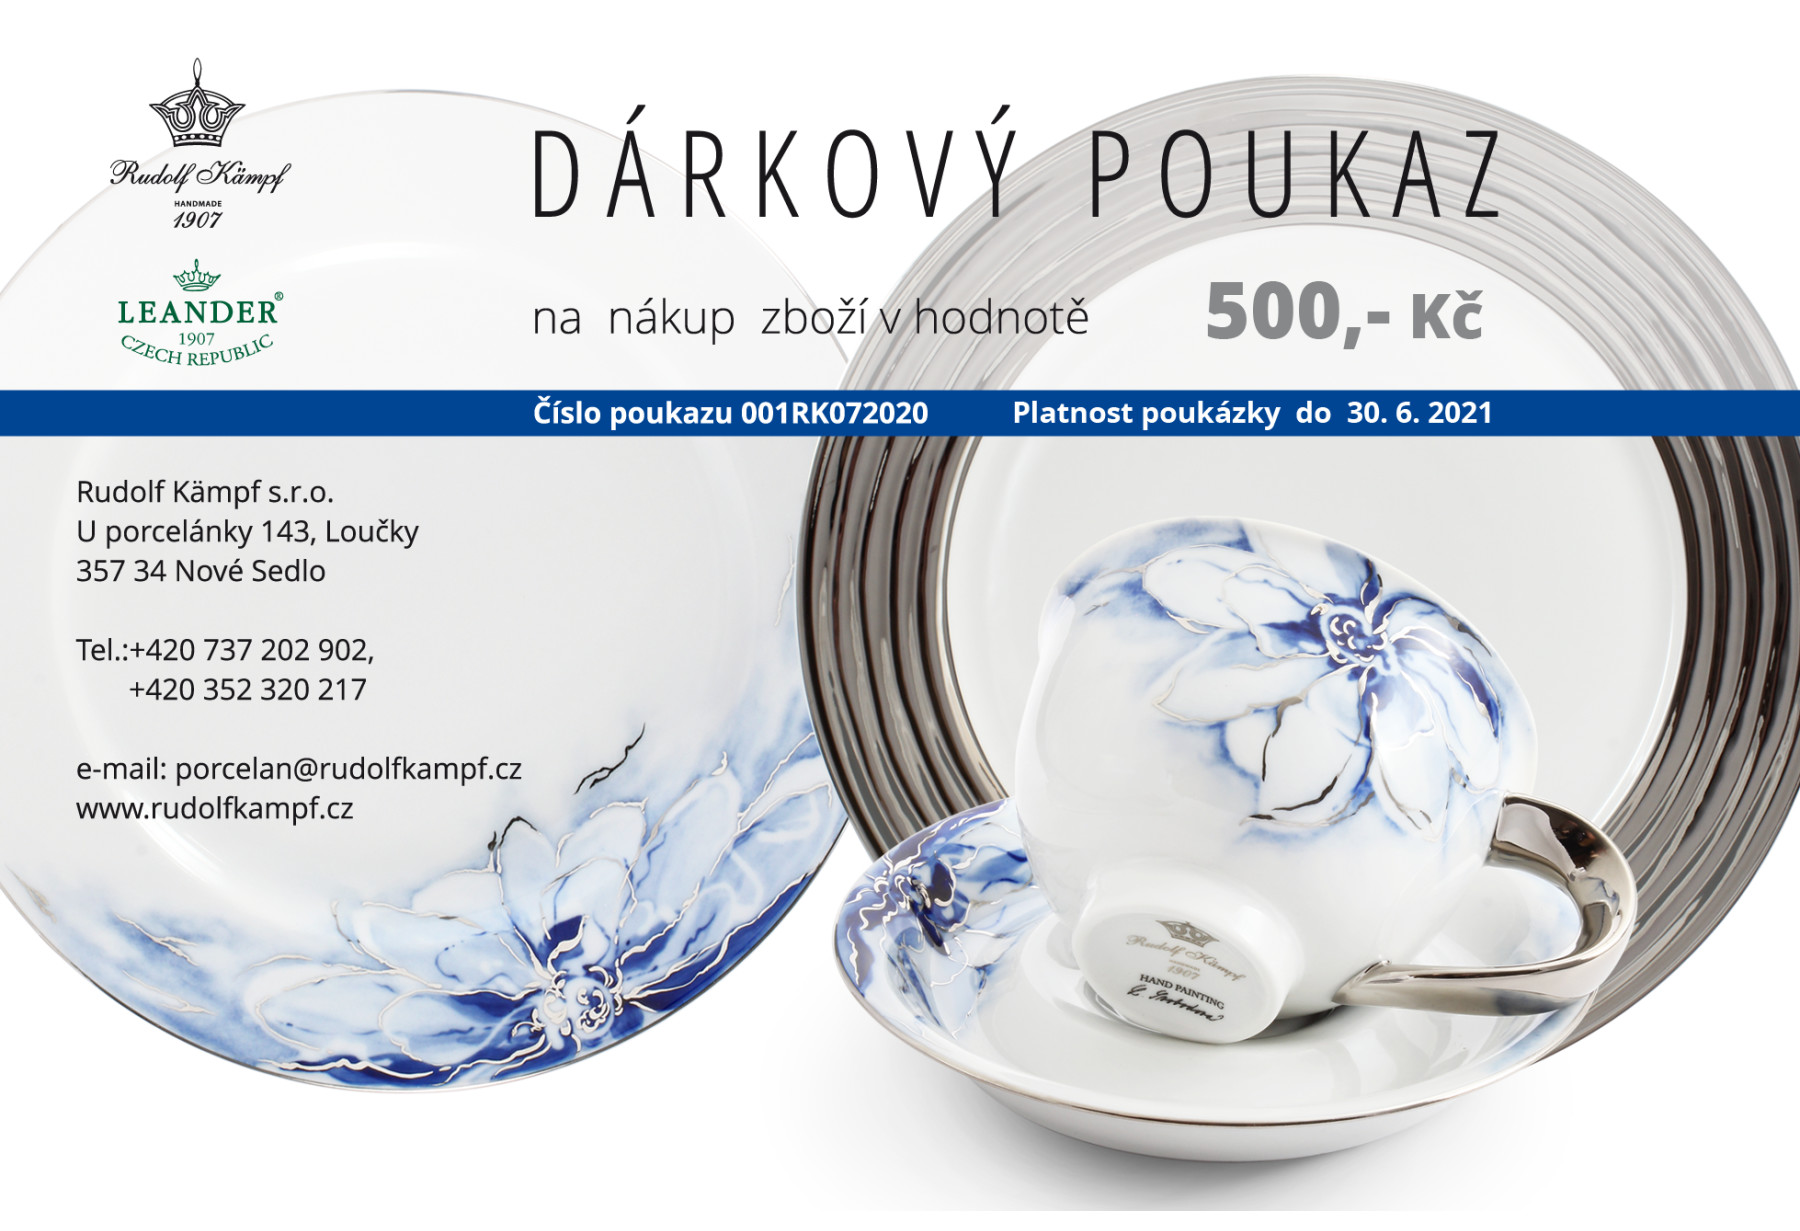 Gift voucher at the amount of CZK 500